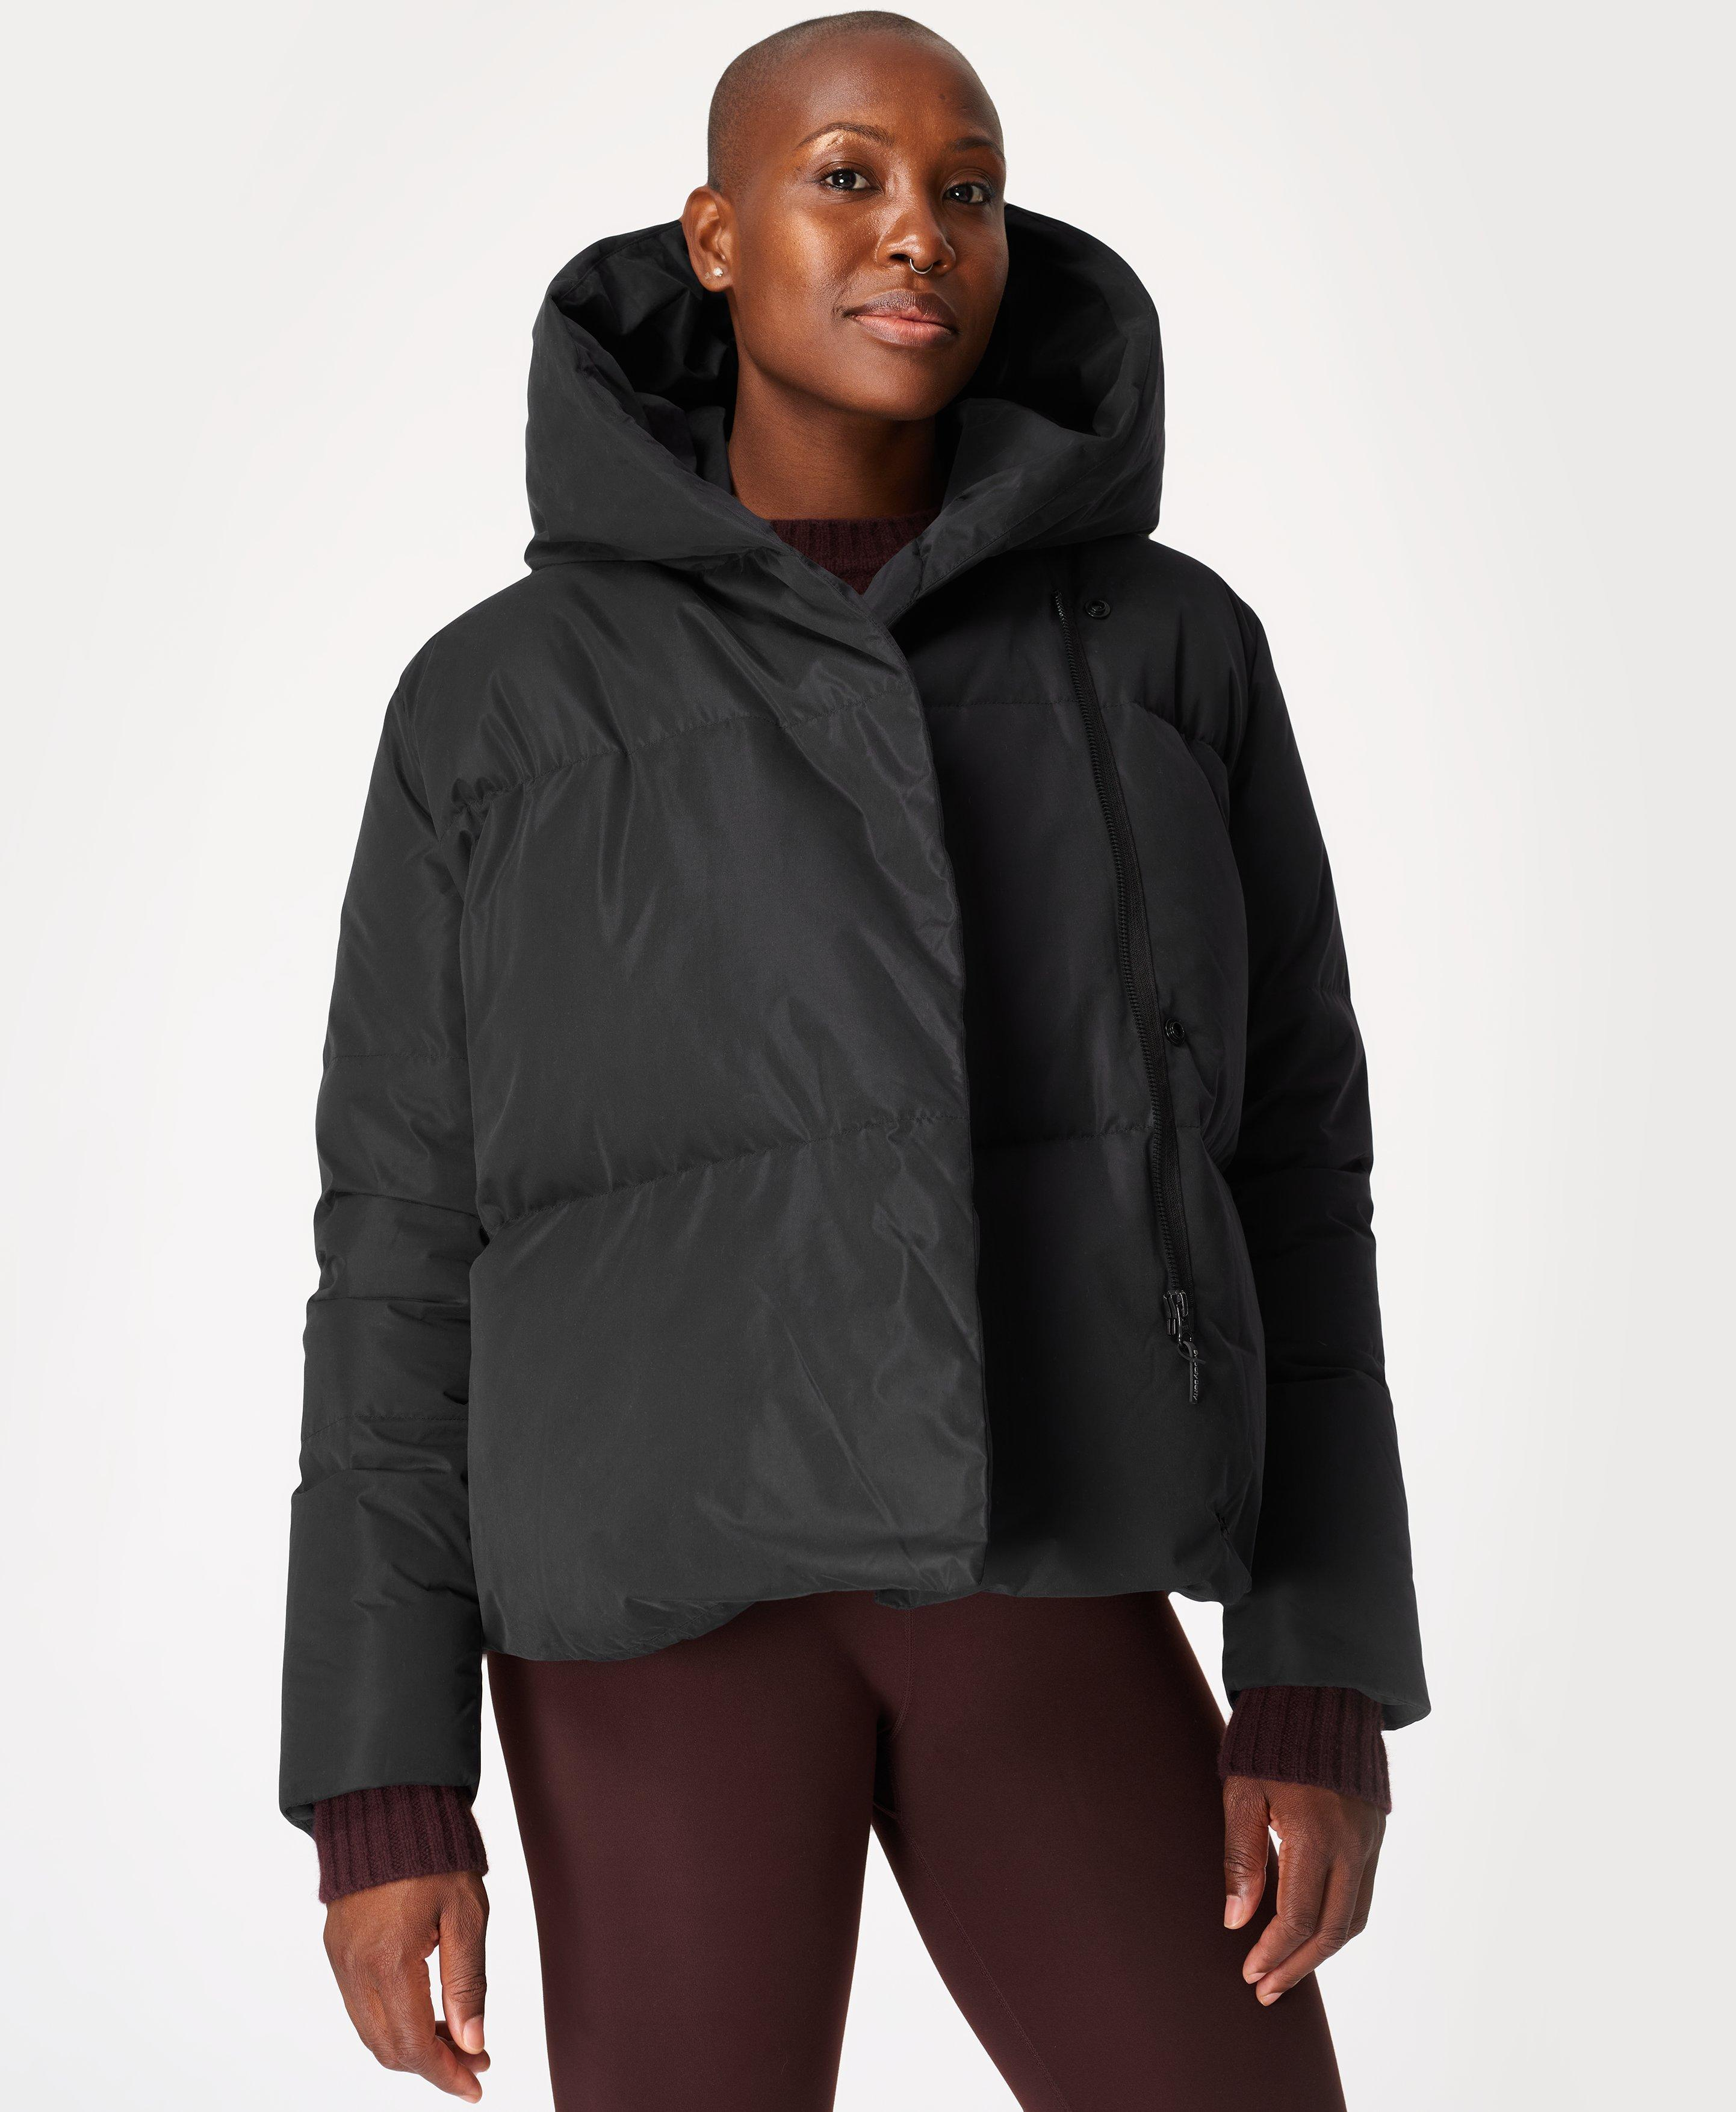 Make being cold a thing of the past in this duvet style jacket. Featuring a wrap front, this is fully padded with responsibly sourced down and has a drawcord at the hem for ultimate warmth. With an oversized hood and side pockets for all your essentials.